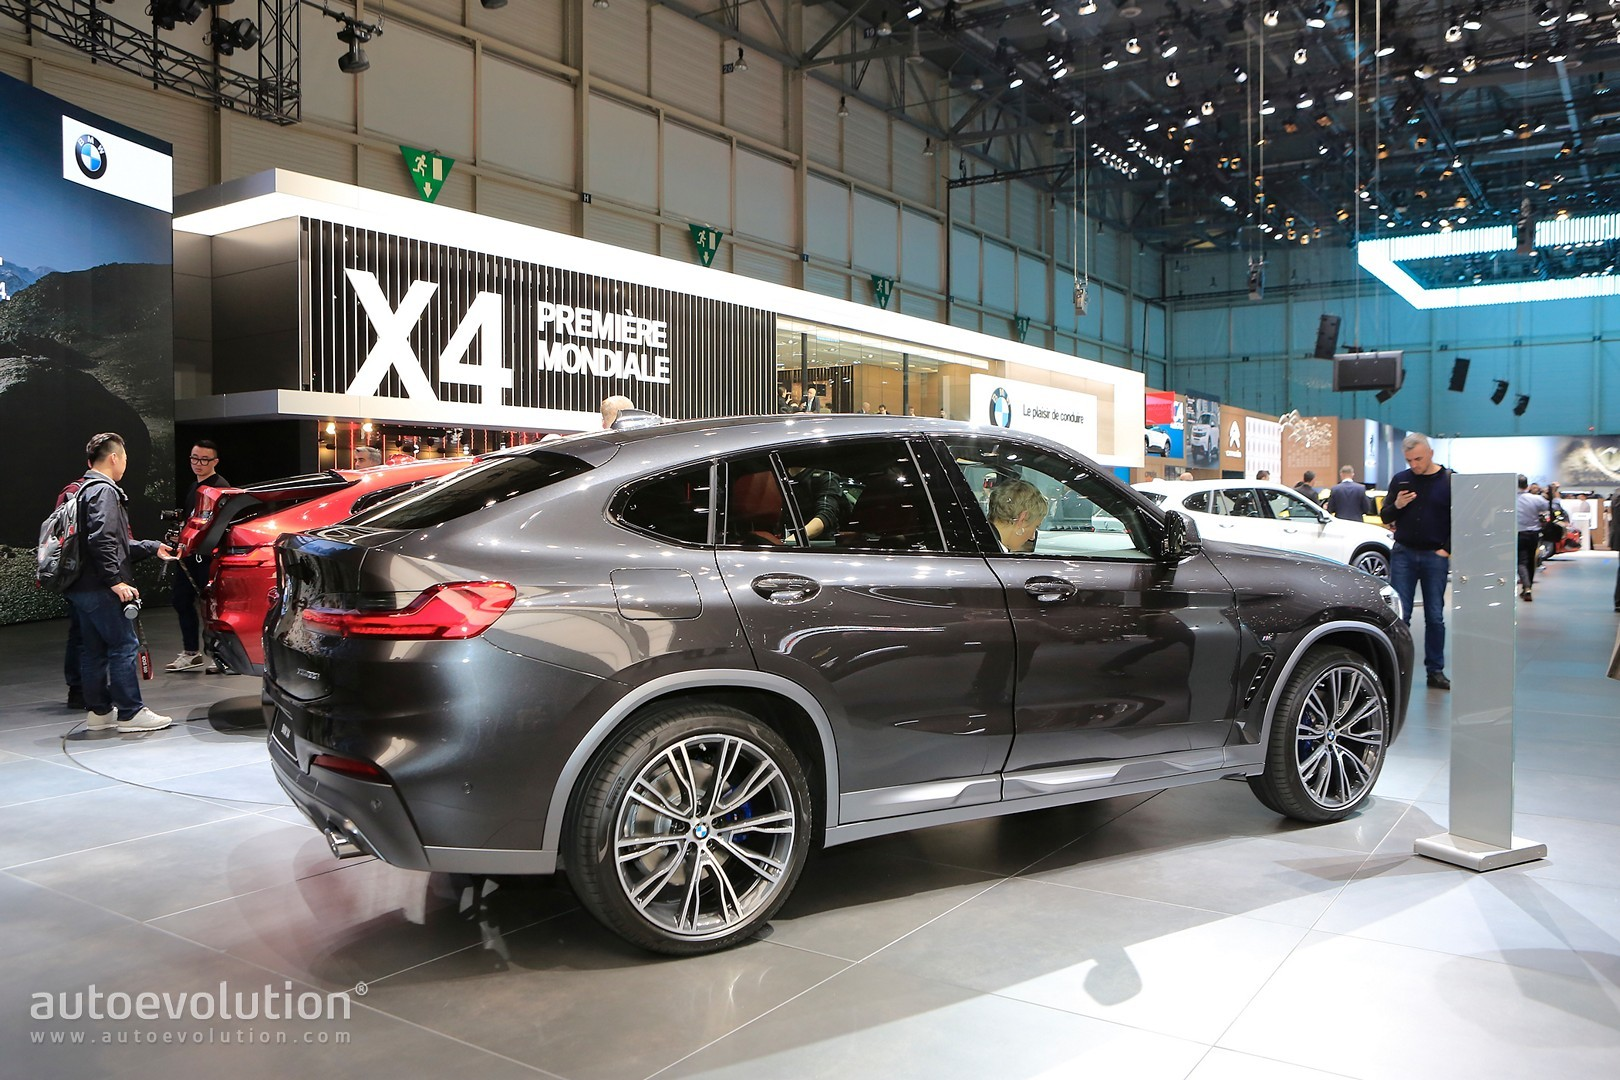 2019 Bmw X4 Looks All New In Geneva But Is It Hotter Than The Velar Autoevolution